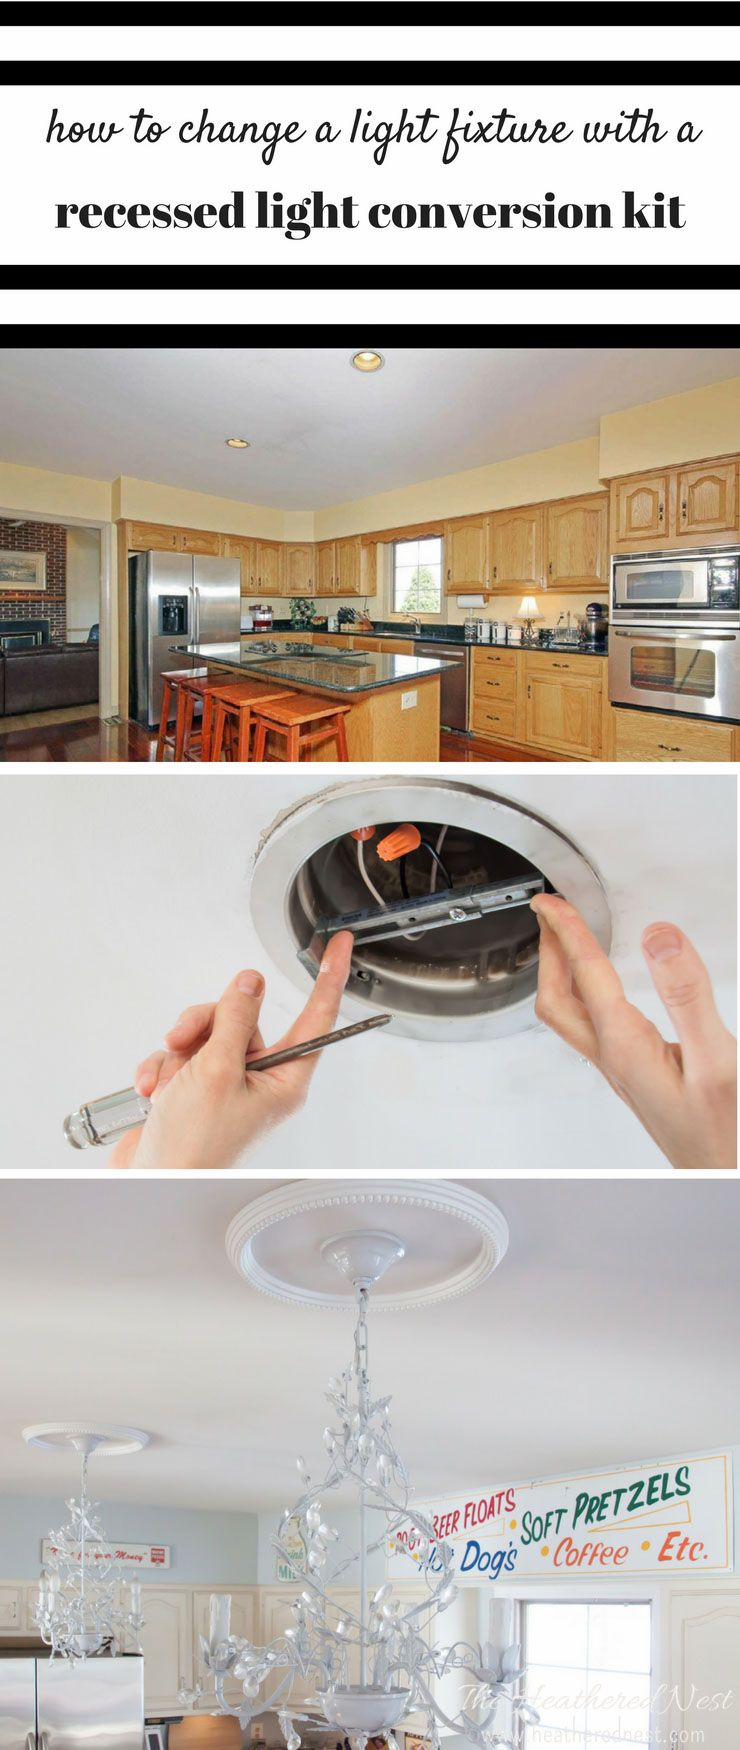 How to change a light fixture using a recessed light conversion kit great tutorial for how to change a light fixturehow to change a recessed light to a chandelier or pendant light would be awesome in our kitchenmaster arubaitofo Gallery